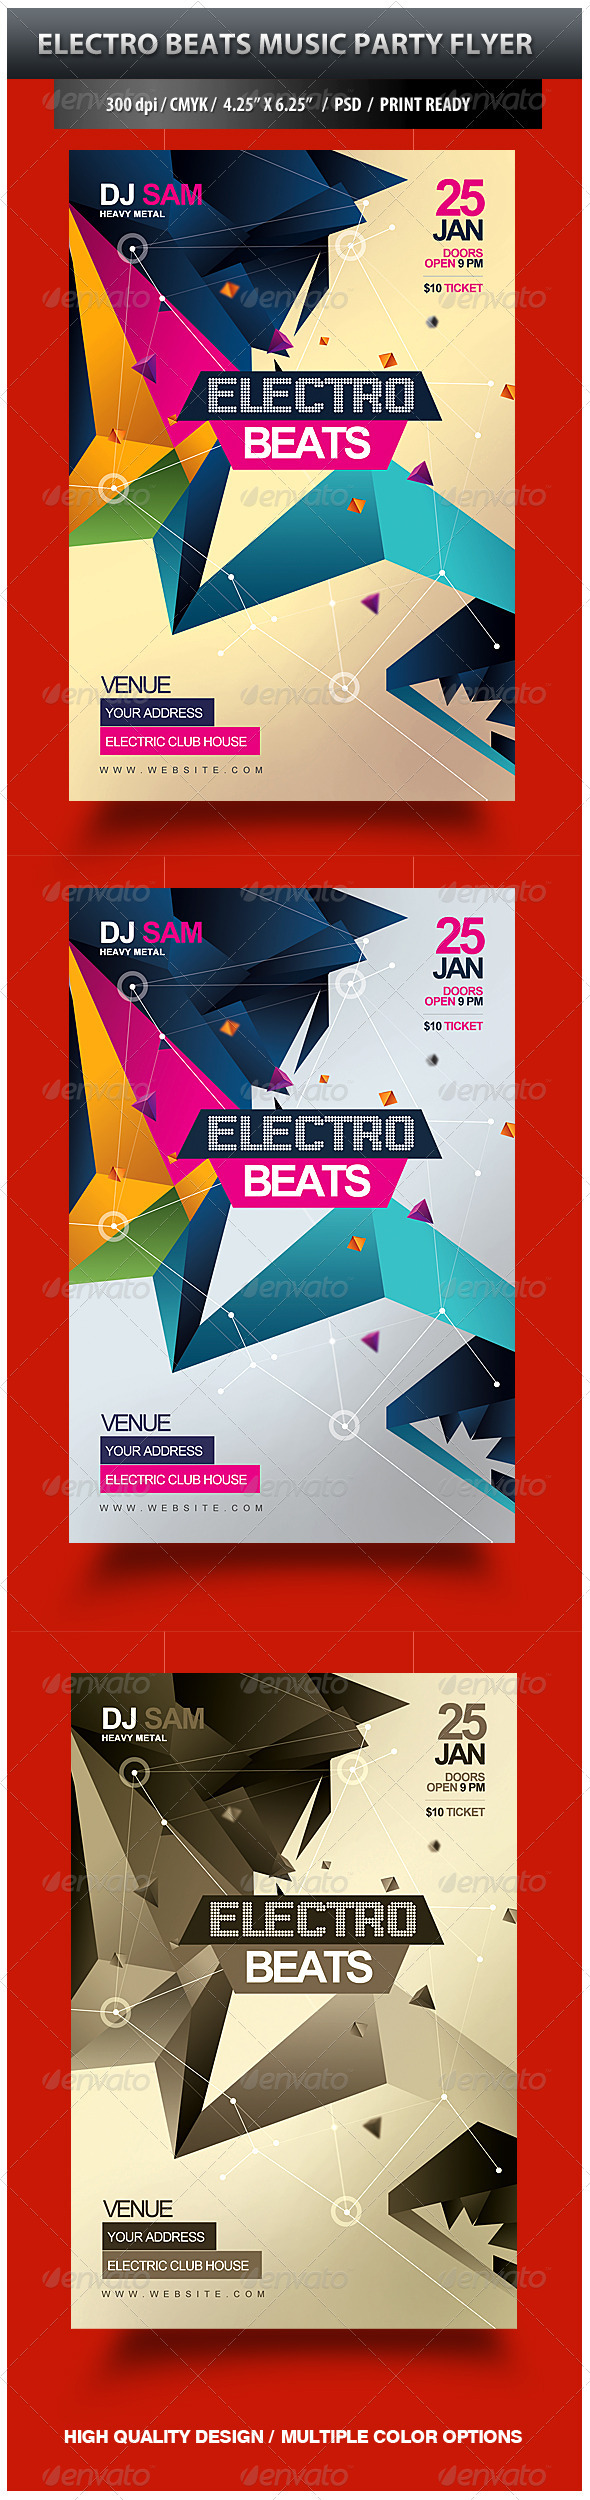 GraphicRiver Electro Beats Music Party Flyer 3795695